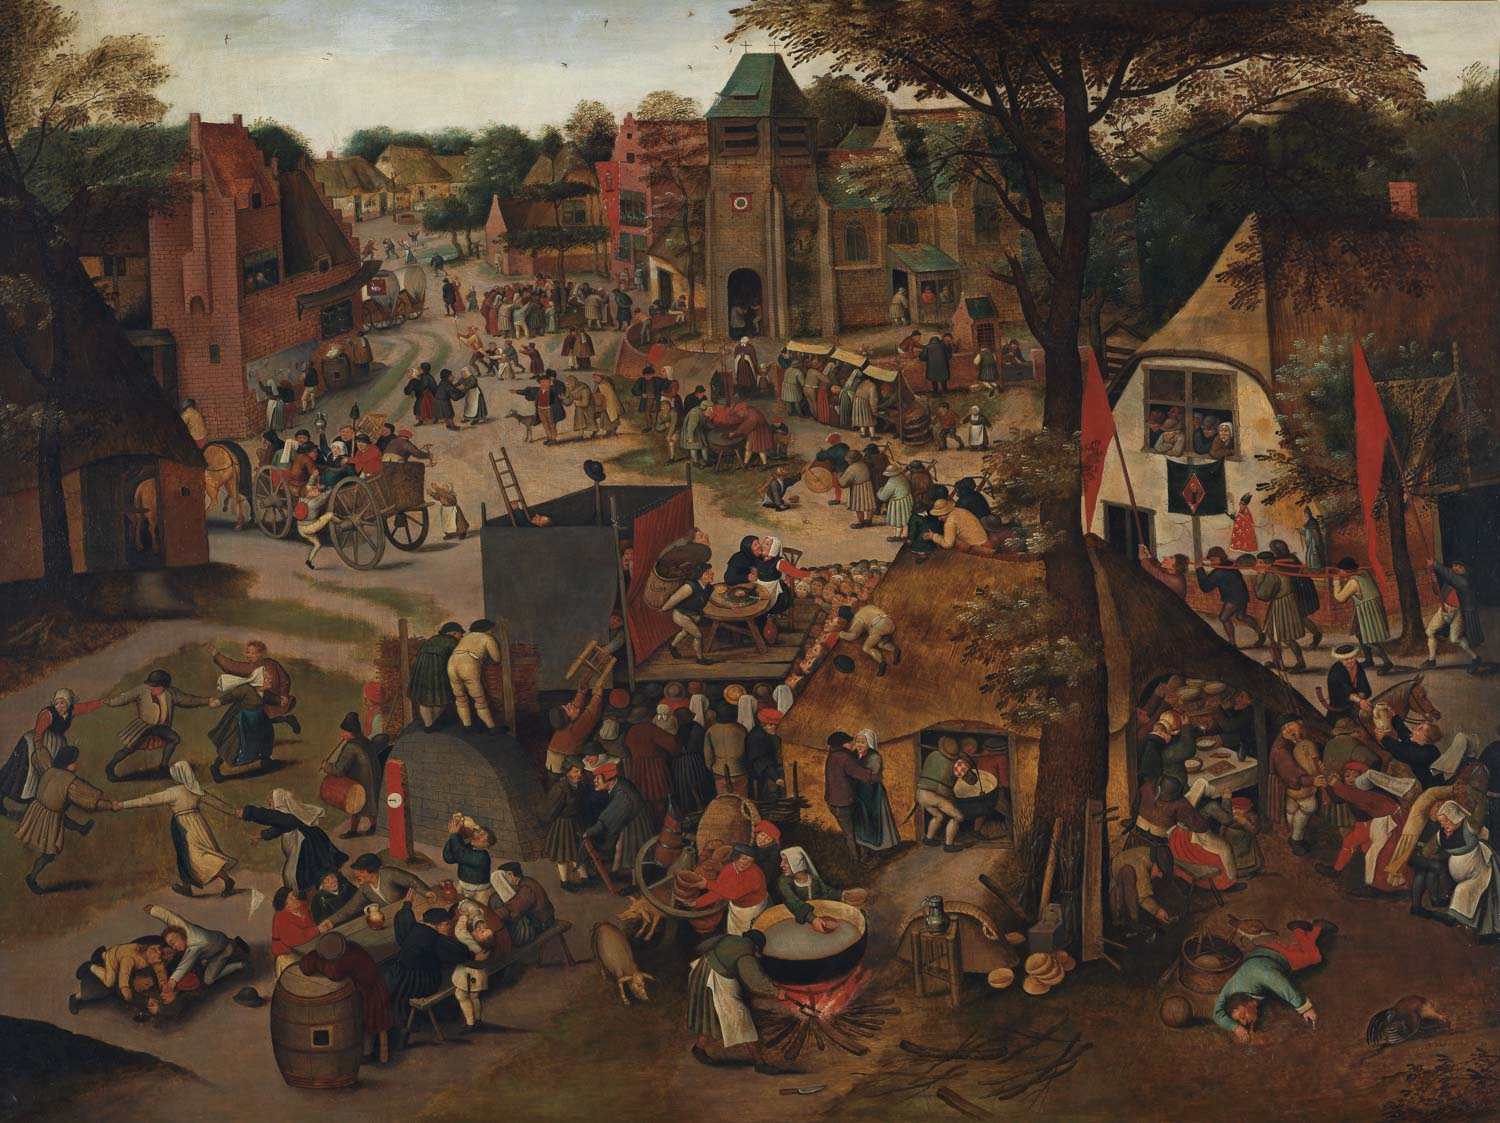 A Village Festival, by Pieter Brueghel the Younger